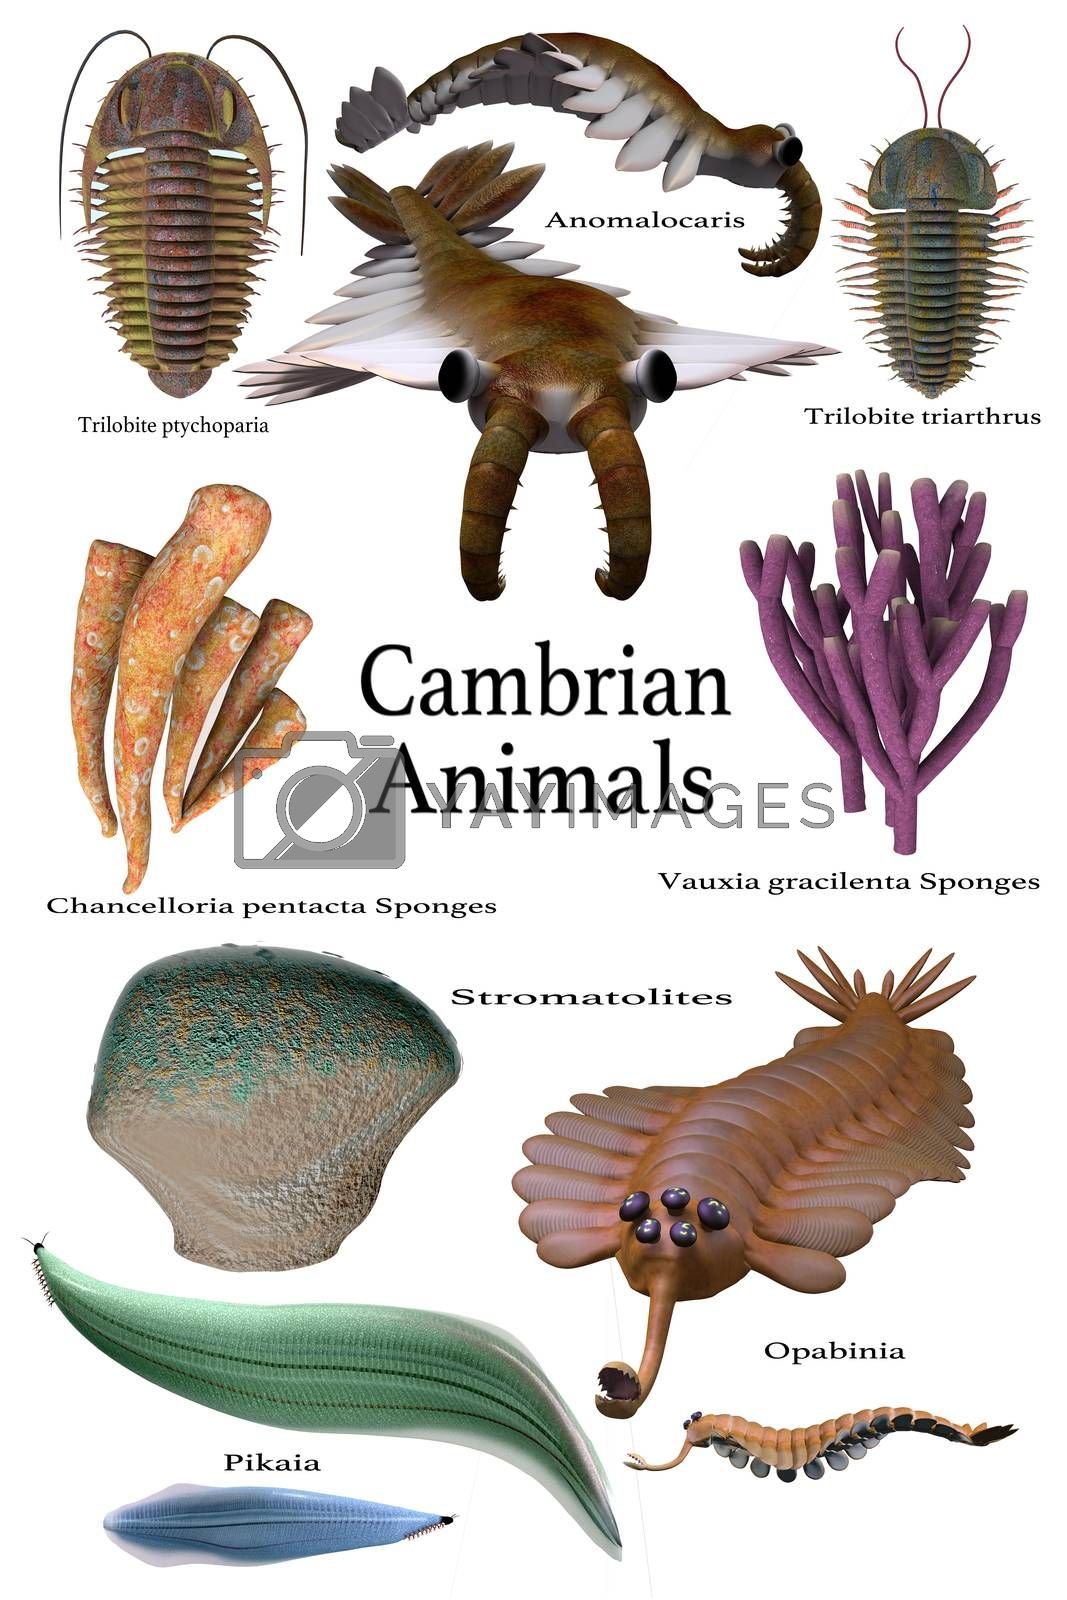 An assortment of some of the animals, sponges and microbes of the Cambrian seas of Earth's history.